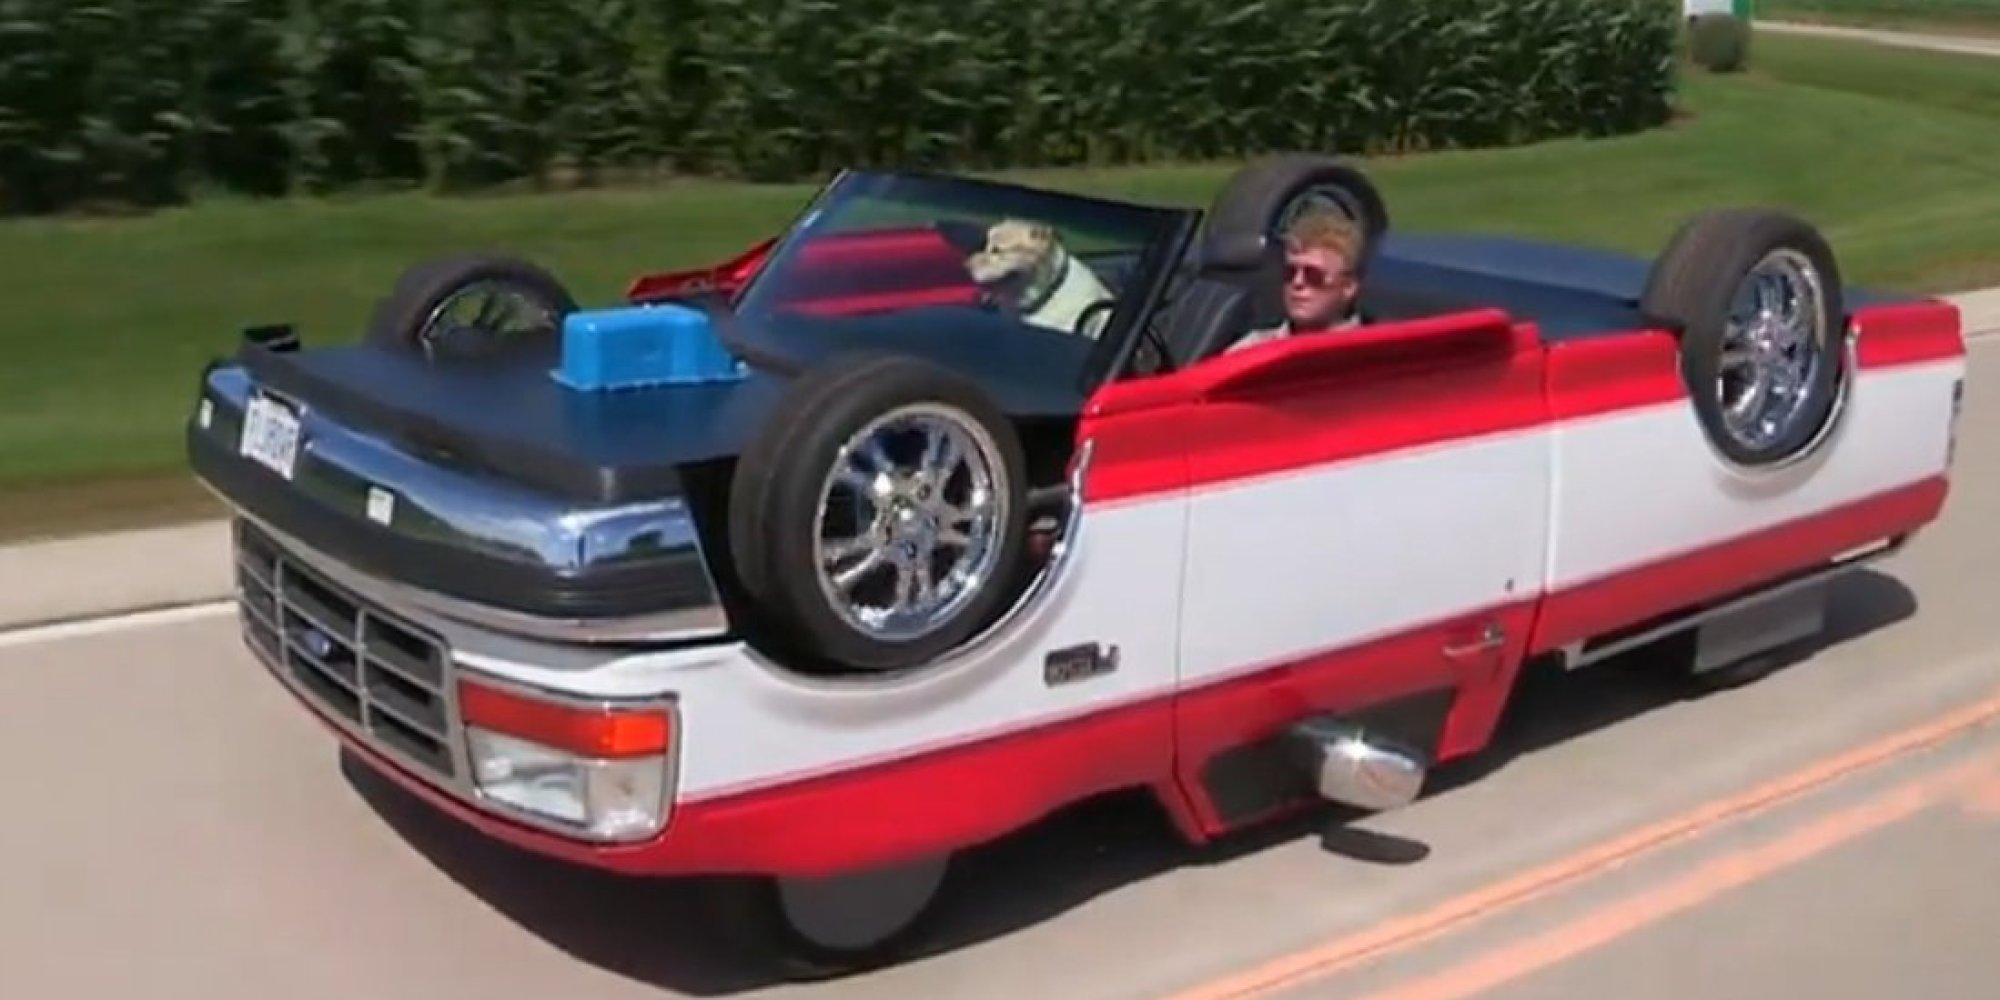 Illinois Mechanic Rick Sullivan Builds Upside Down Car